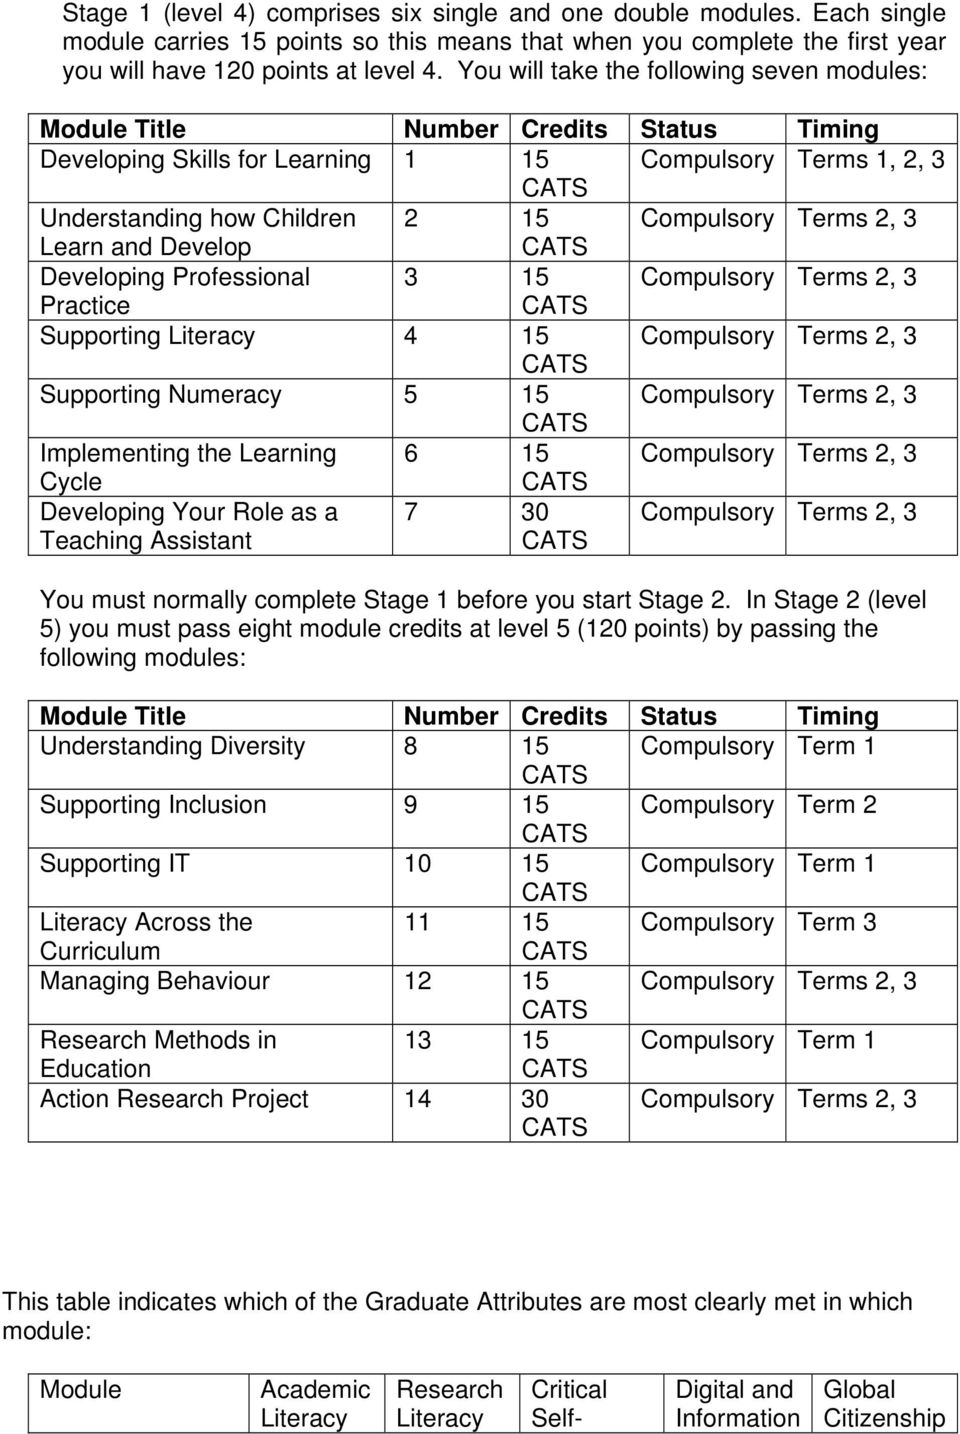 Learn and Develop Developing Professional 3 15 Compulsory Terms 2, 3 Practice Supporting Literacy 4 15 Compulsory Terms 2, 3 Supporting Numeracy 5 15 Compulsory Terms 2, 3 Implementing the Learning 6